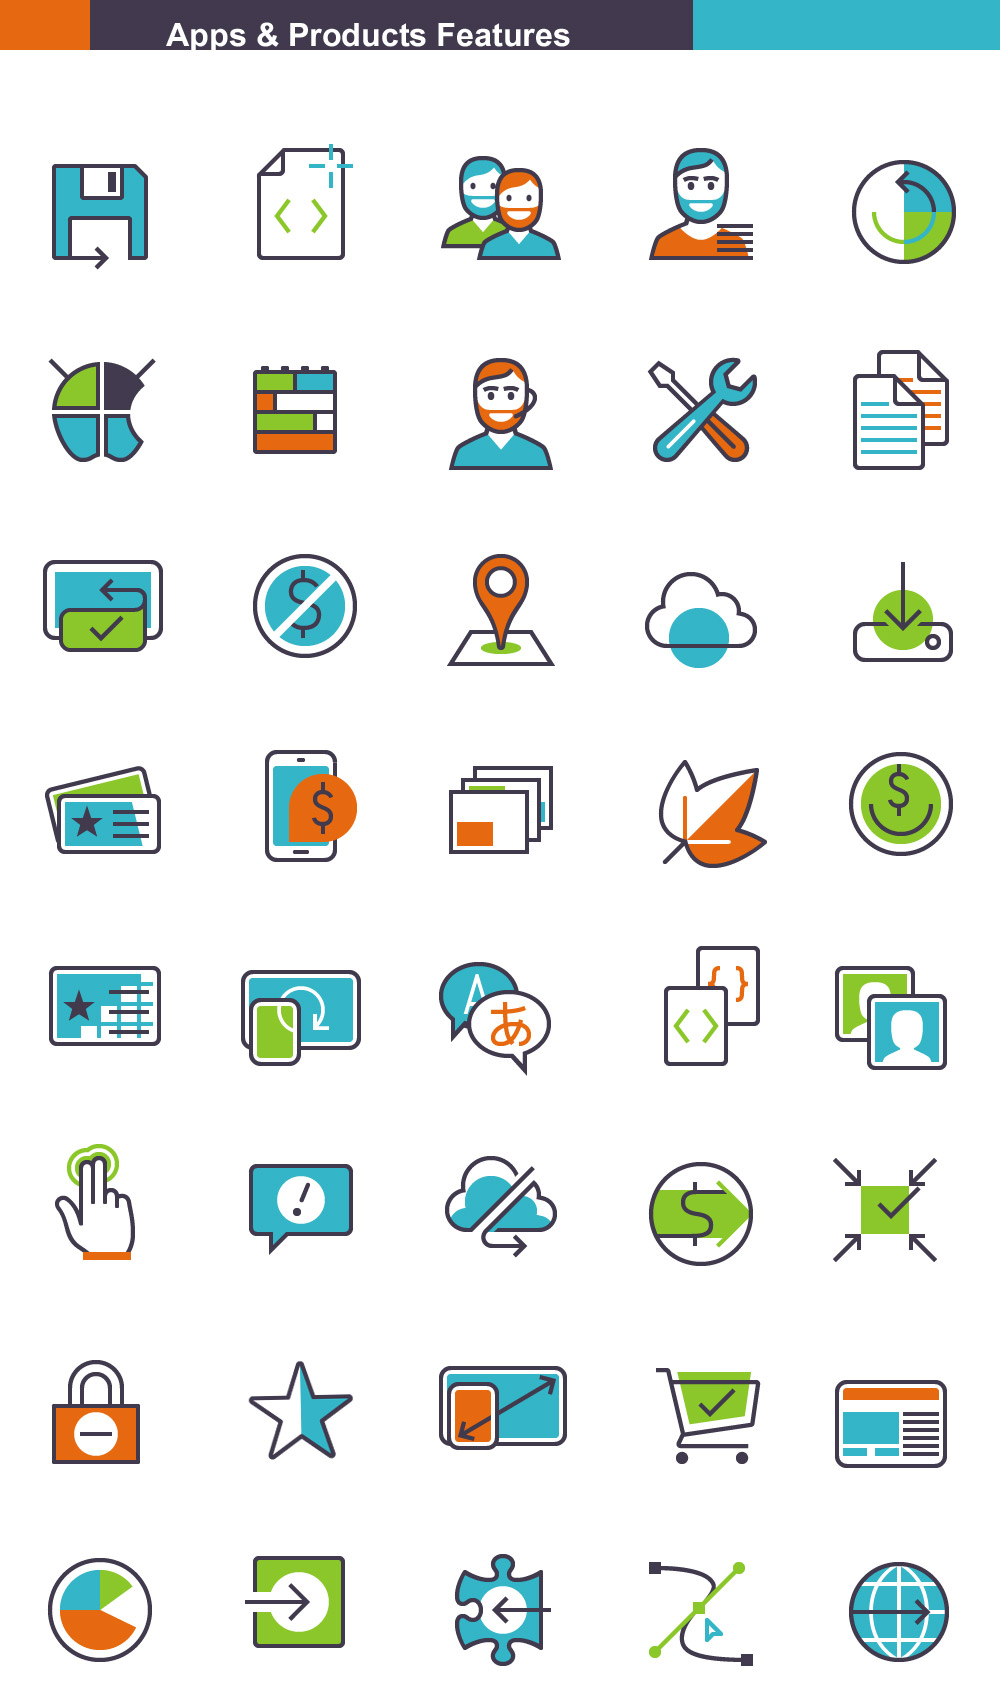 http://www.graphicsfuel.com/wp-content/uploads/2016/02/Free-Apps-Icons-1.jpg